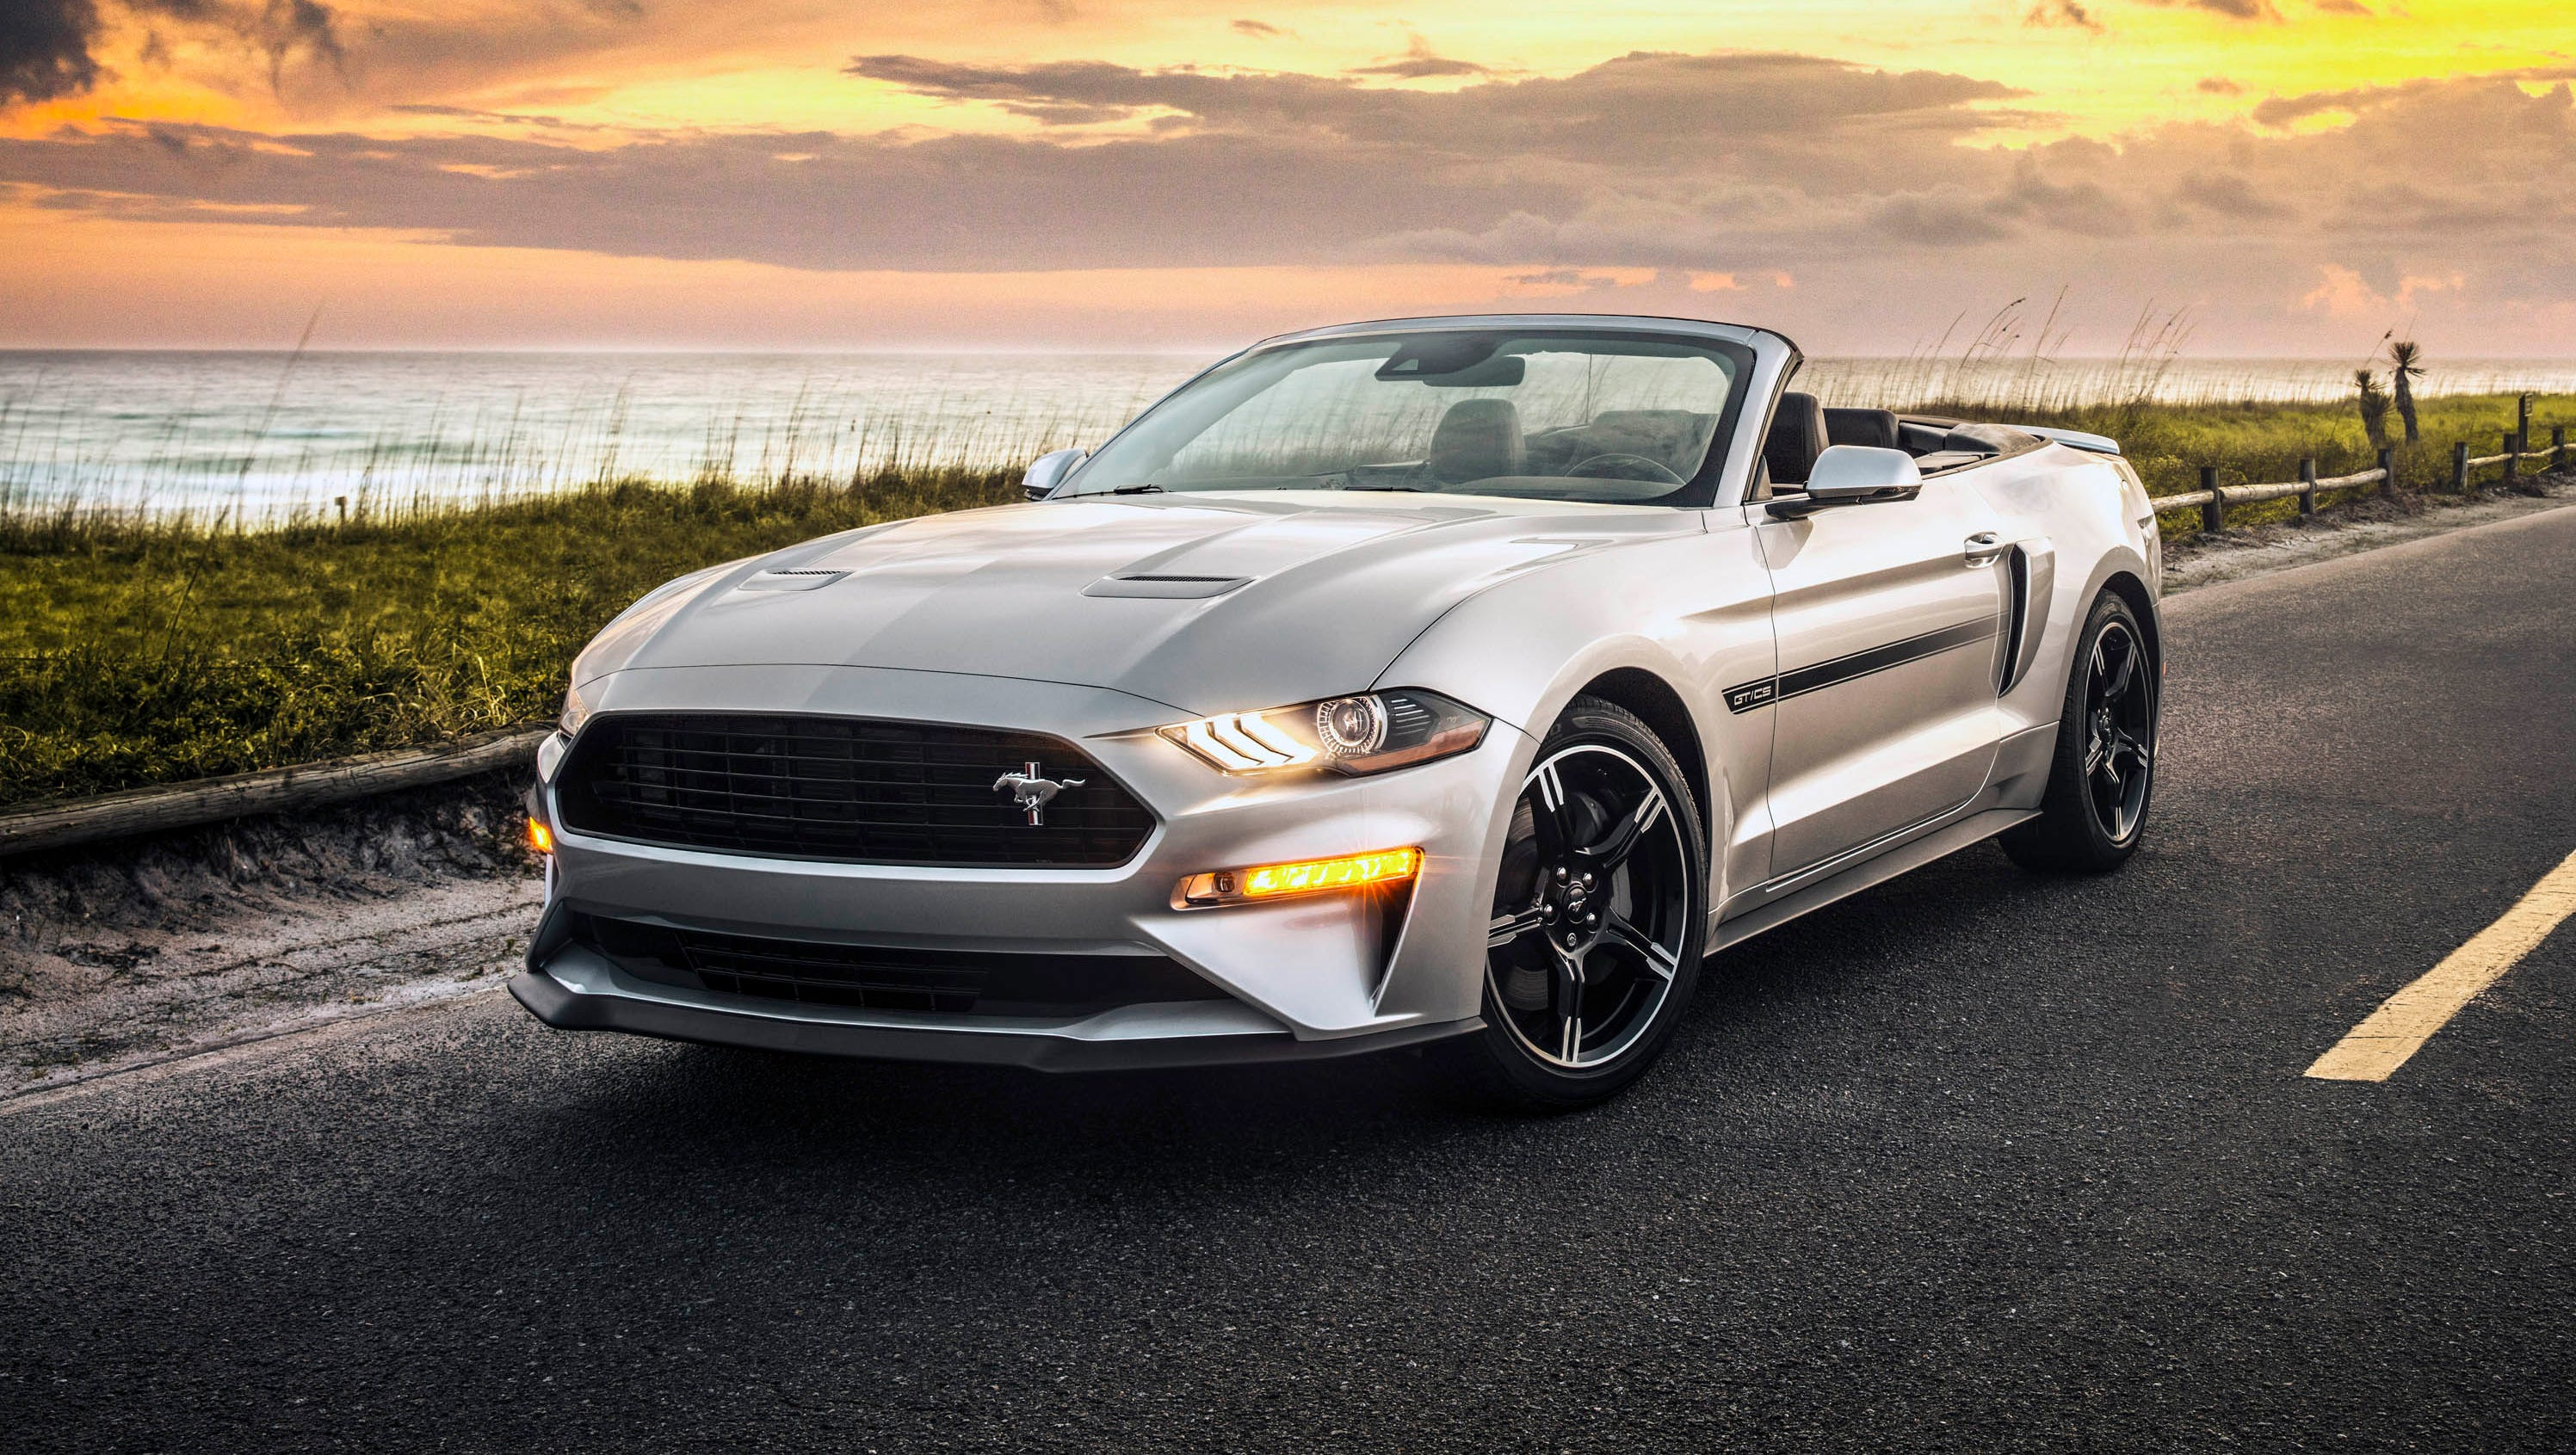 Mustang Gt California Special >> 2019 Ford Mustang Gt California Special Adds Muscle To Lineup